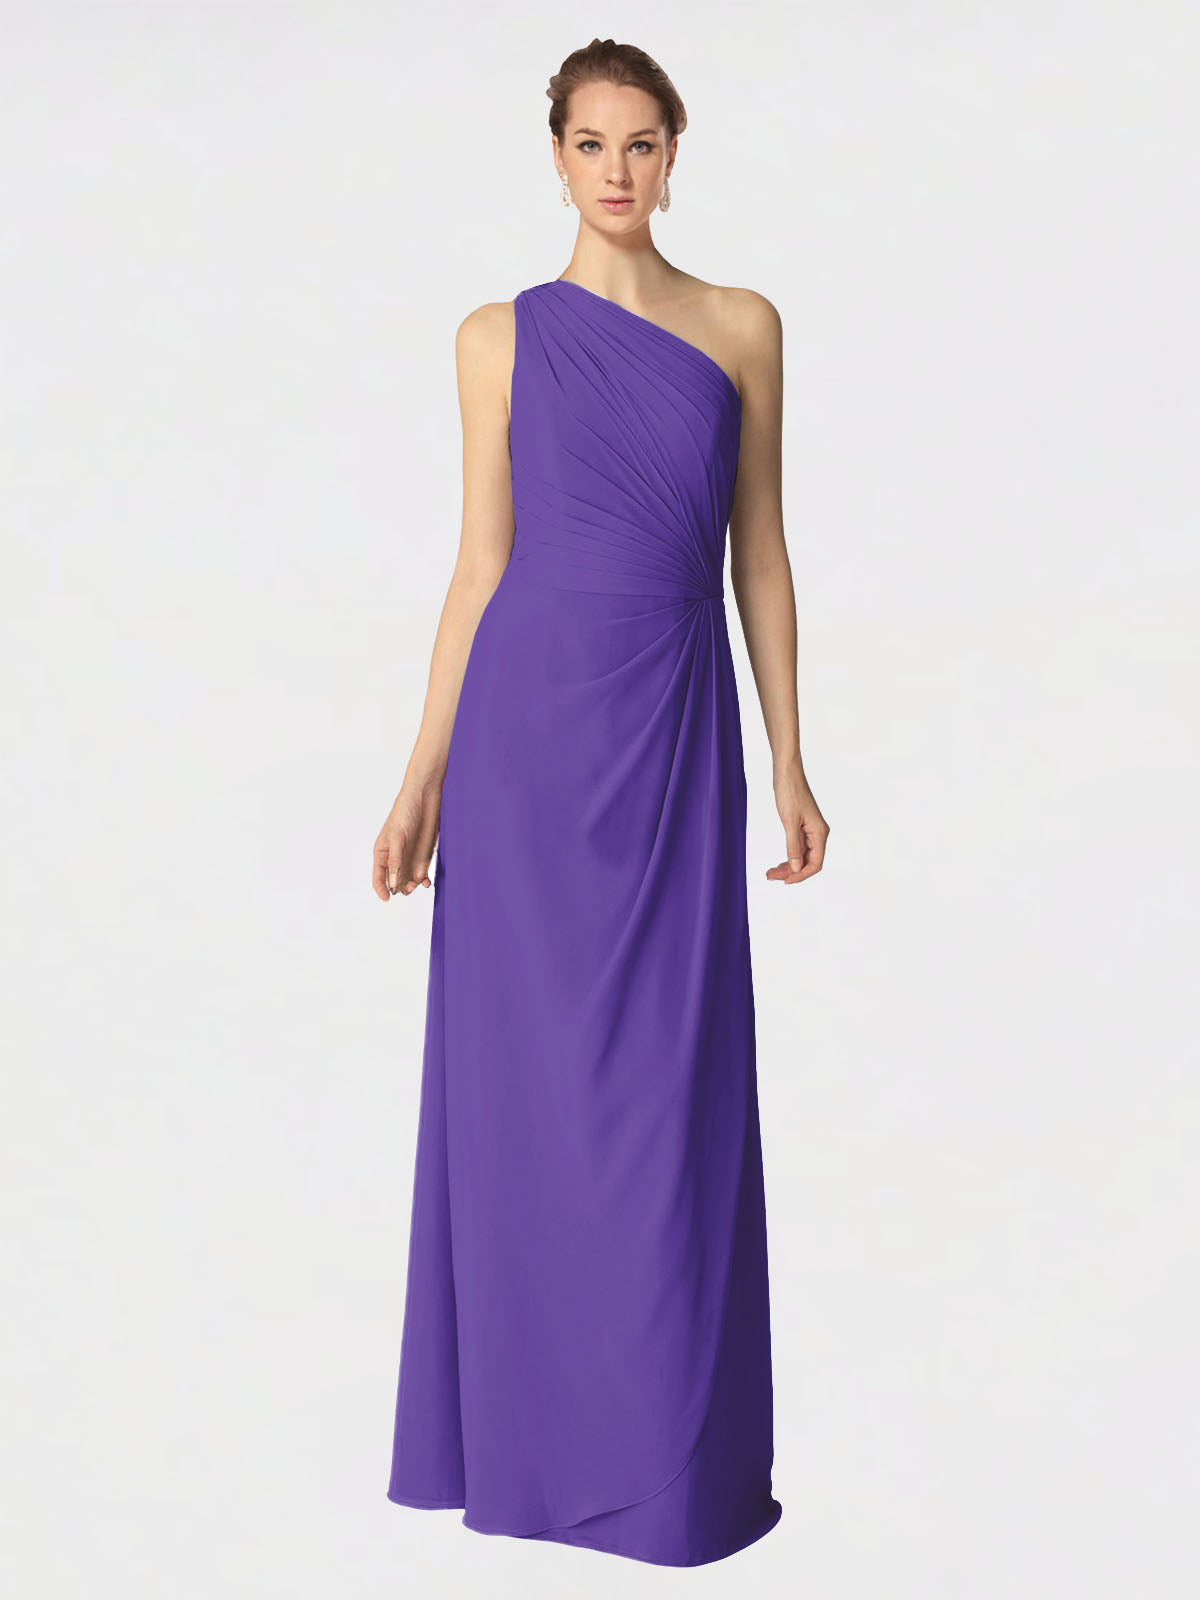 Long A-Line One Shoulder Sleeveless Purple Chiffon Bridesmaid Dress Aurora